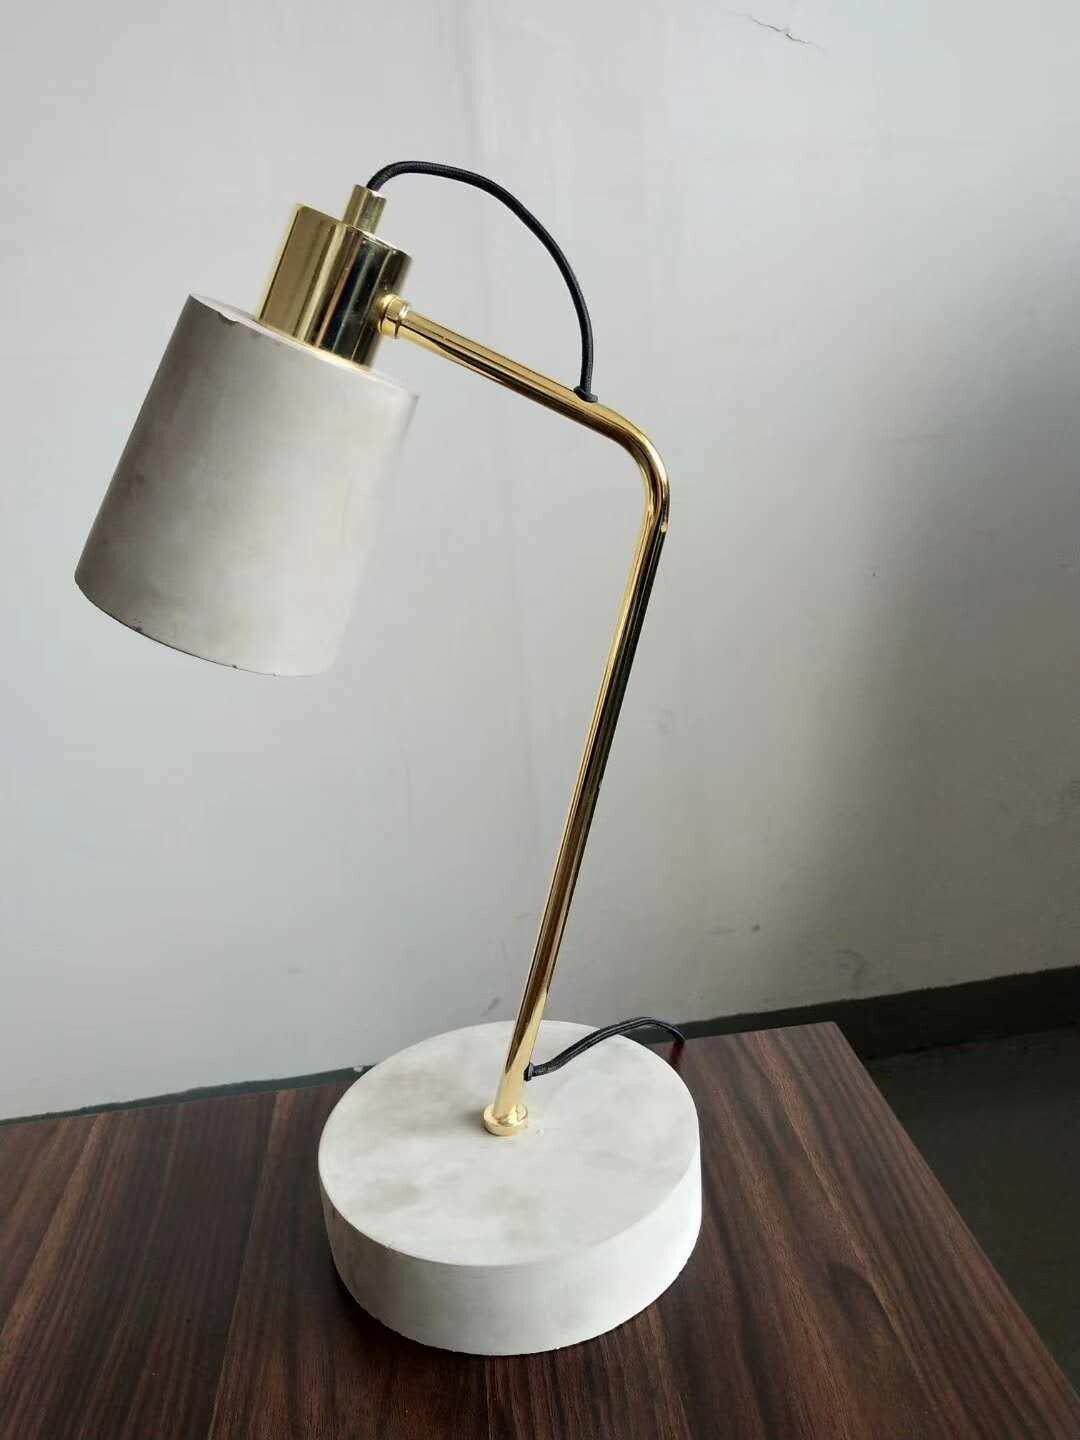 Zement Table lamp concrete polished brass look